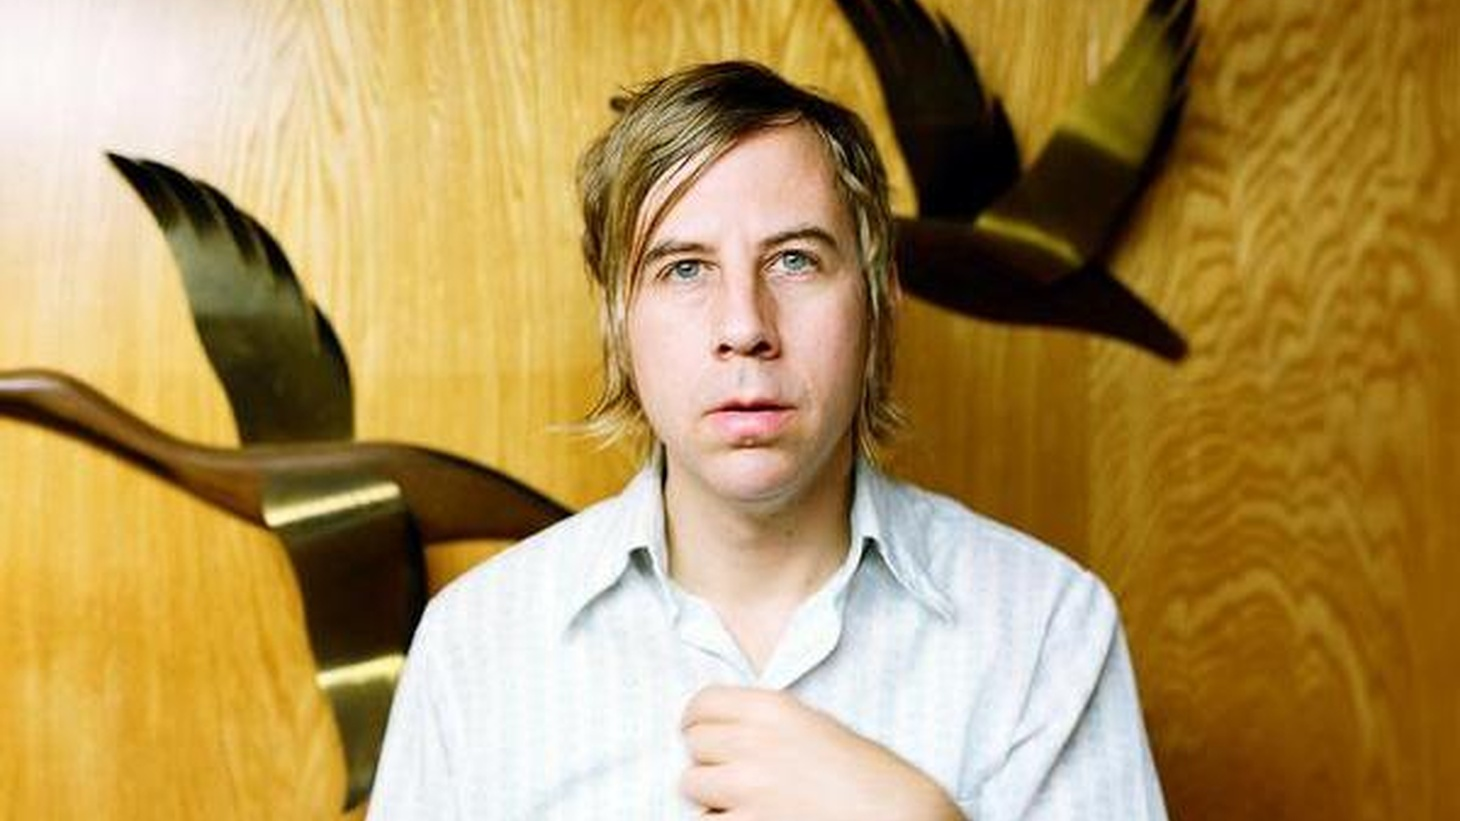 John Vanderslice is a sonic technician who meticulously crafts pop songs in his San Francisco studio, which has become a focal point of the local rock scene. He shares some new creations at 11:15am.